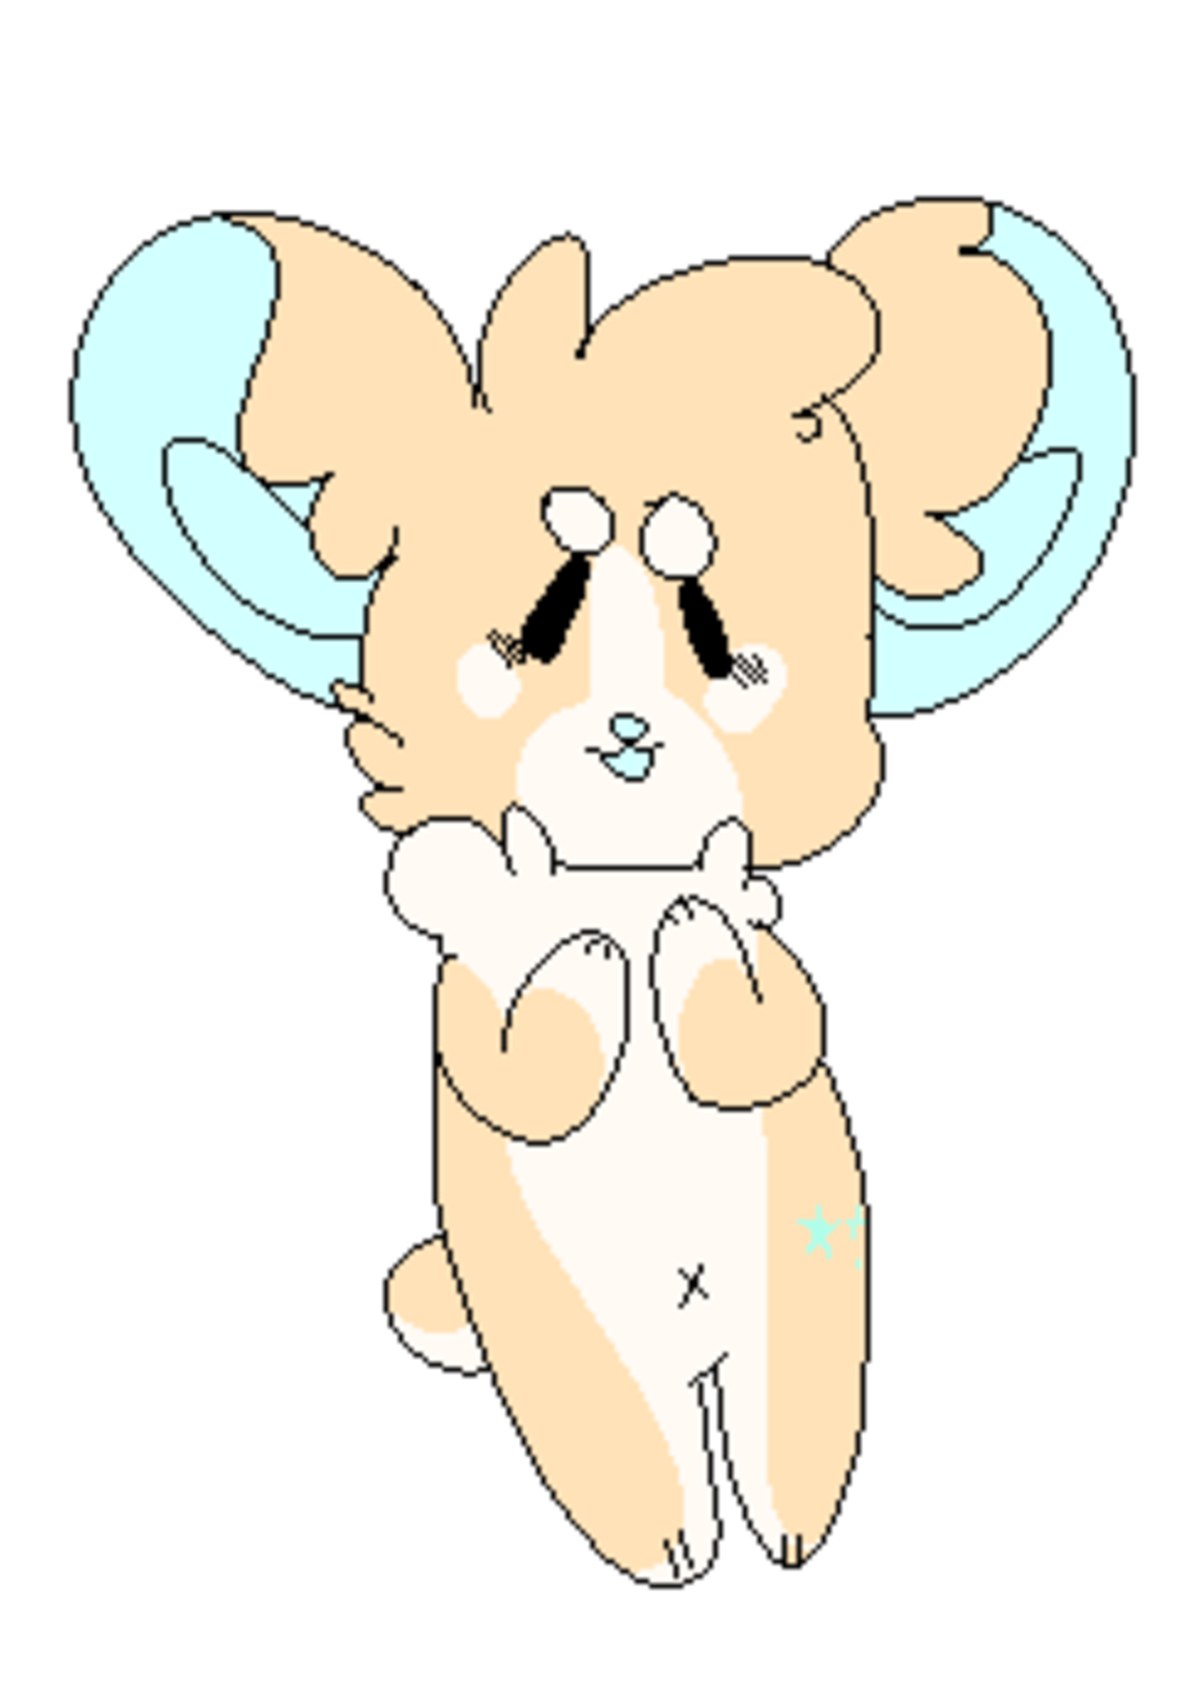 hope yall like chibis. this is puffs he corgi (also kind of taking a break from my other stuff and just having some fun with some doodly bois) you can see my ot